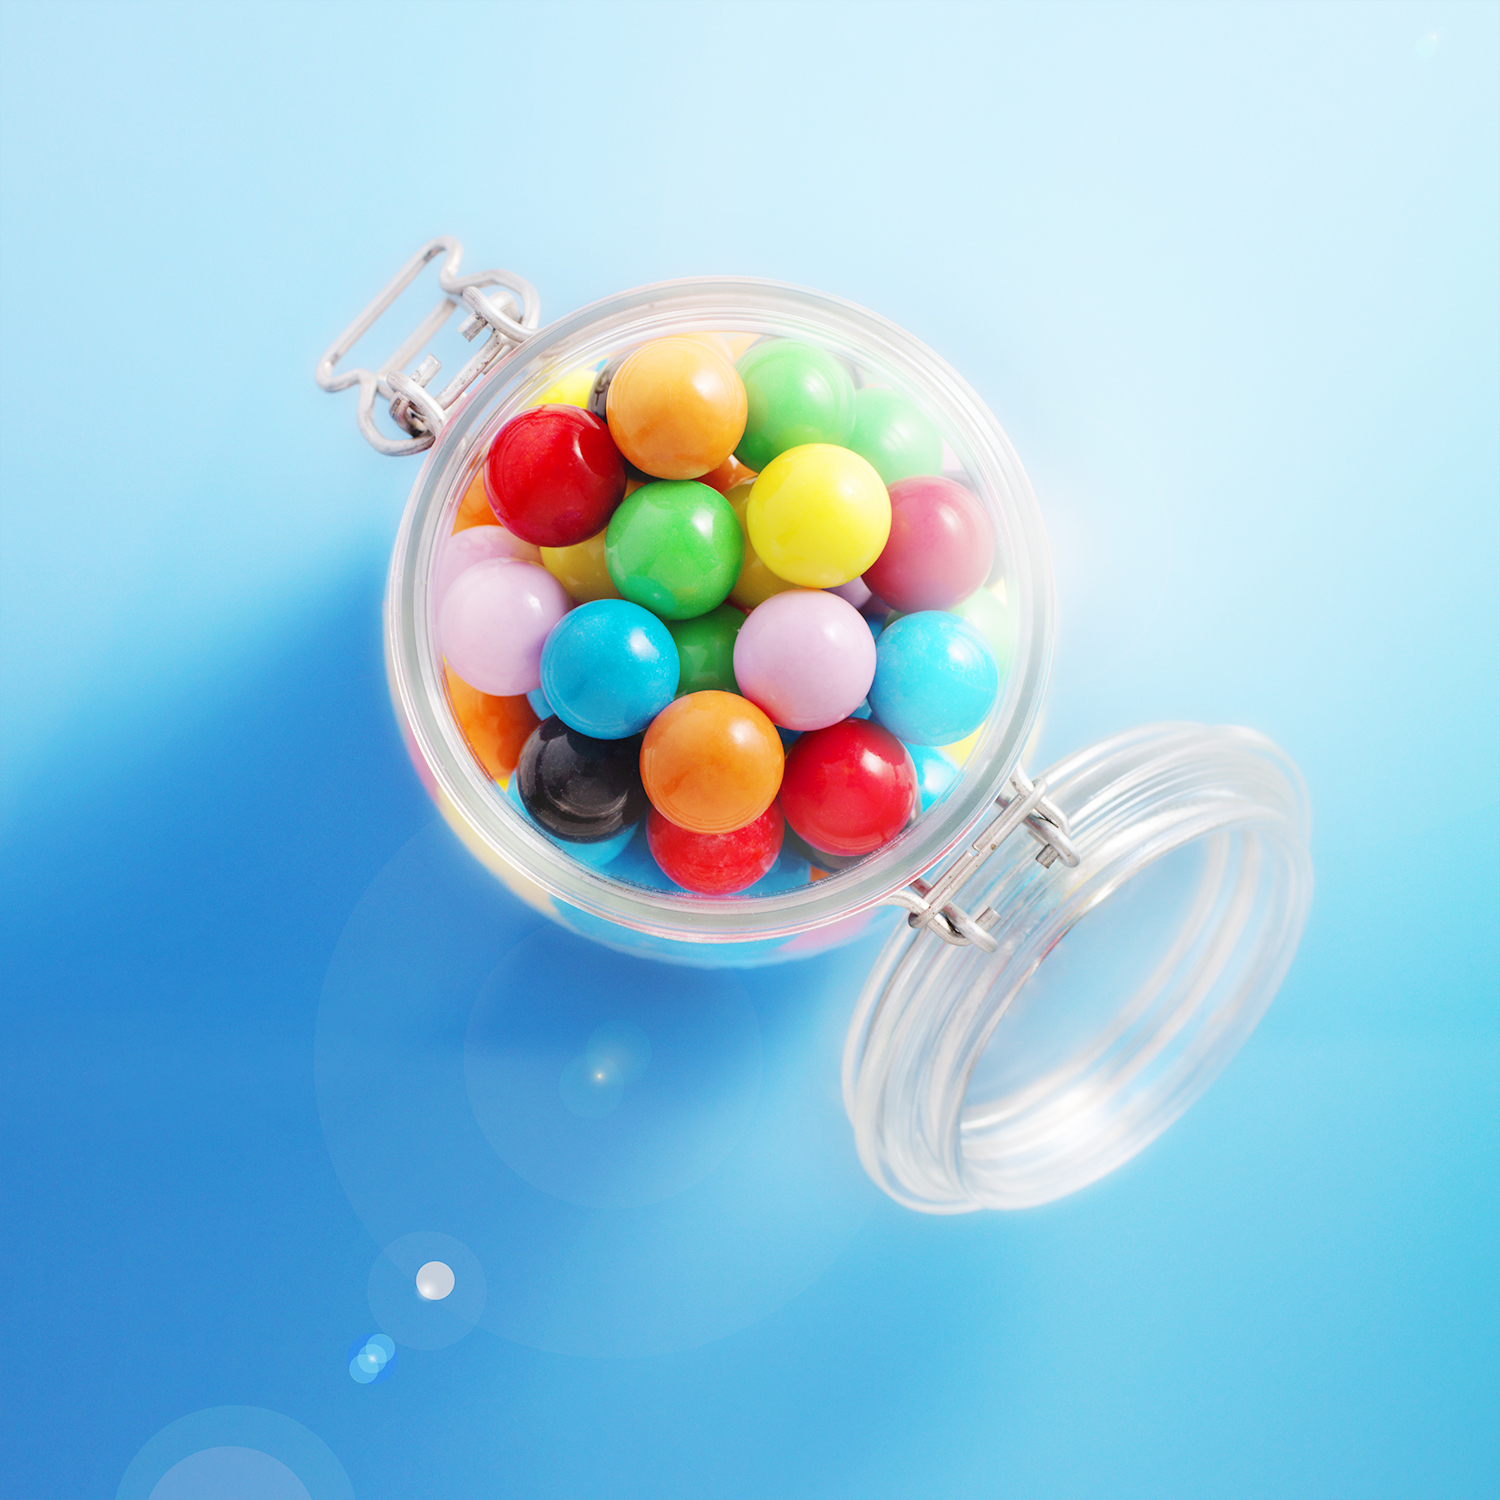 COLOURFULL SWEETS IN A JAR.jpg